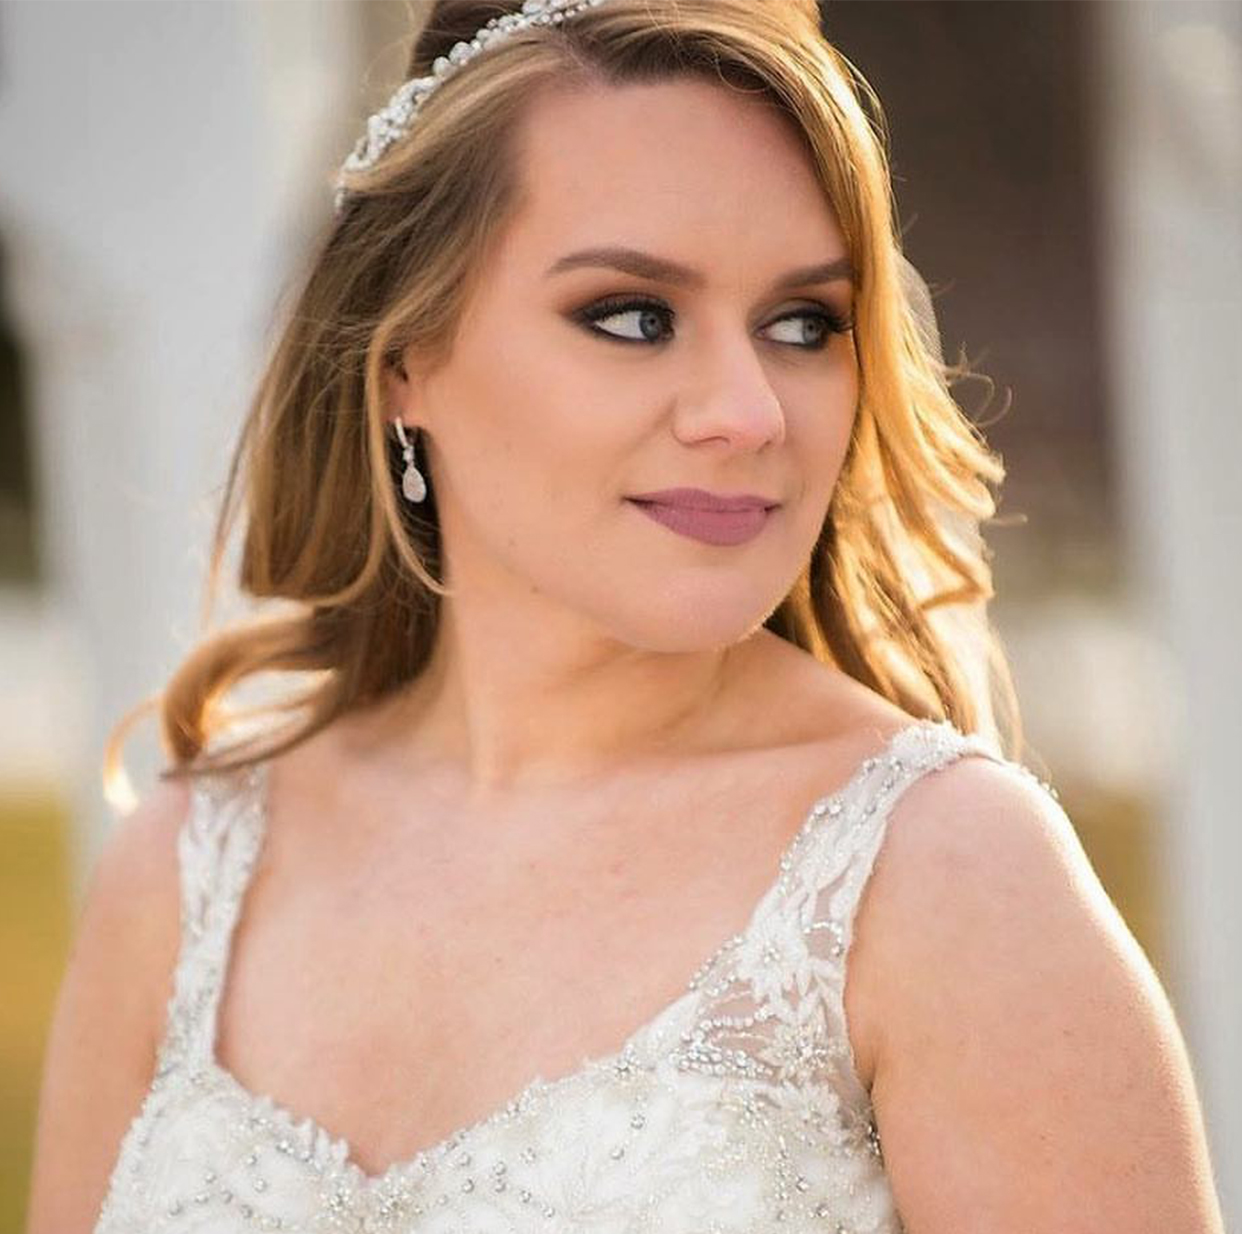 makeup-by-mehry-bridal-engagement-editorial-print-professional-makeup-course-artistry-occasion-wedding-runway-lessons-events-foxboro-3.jpg